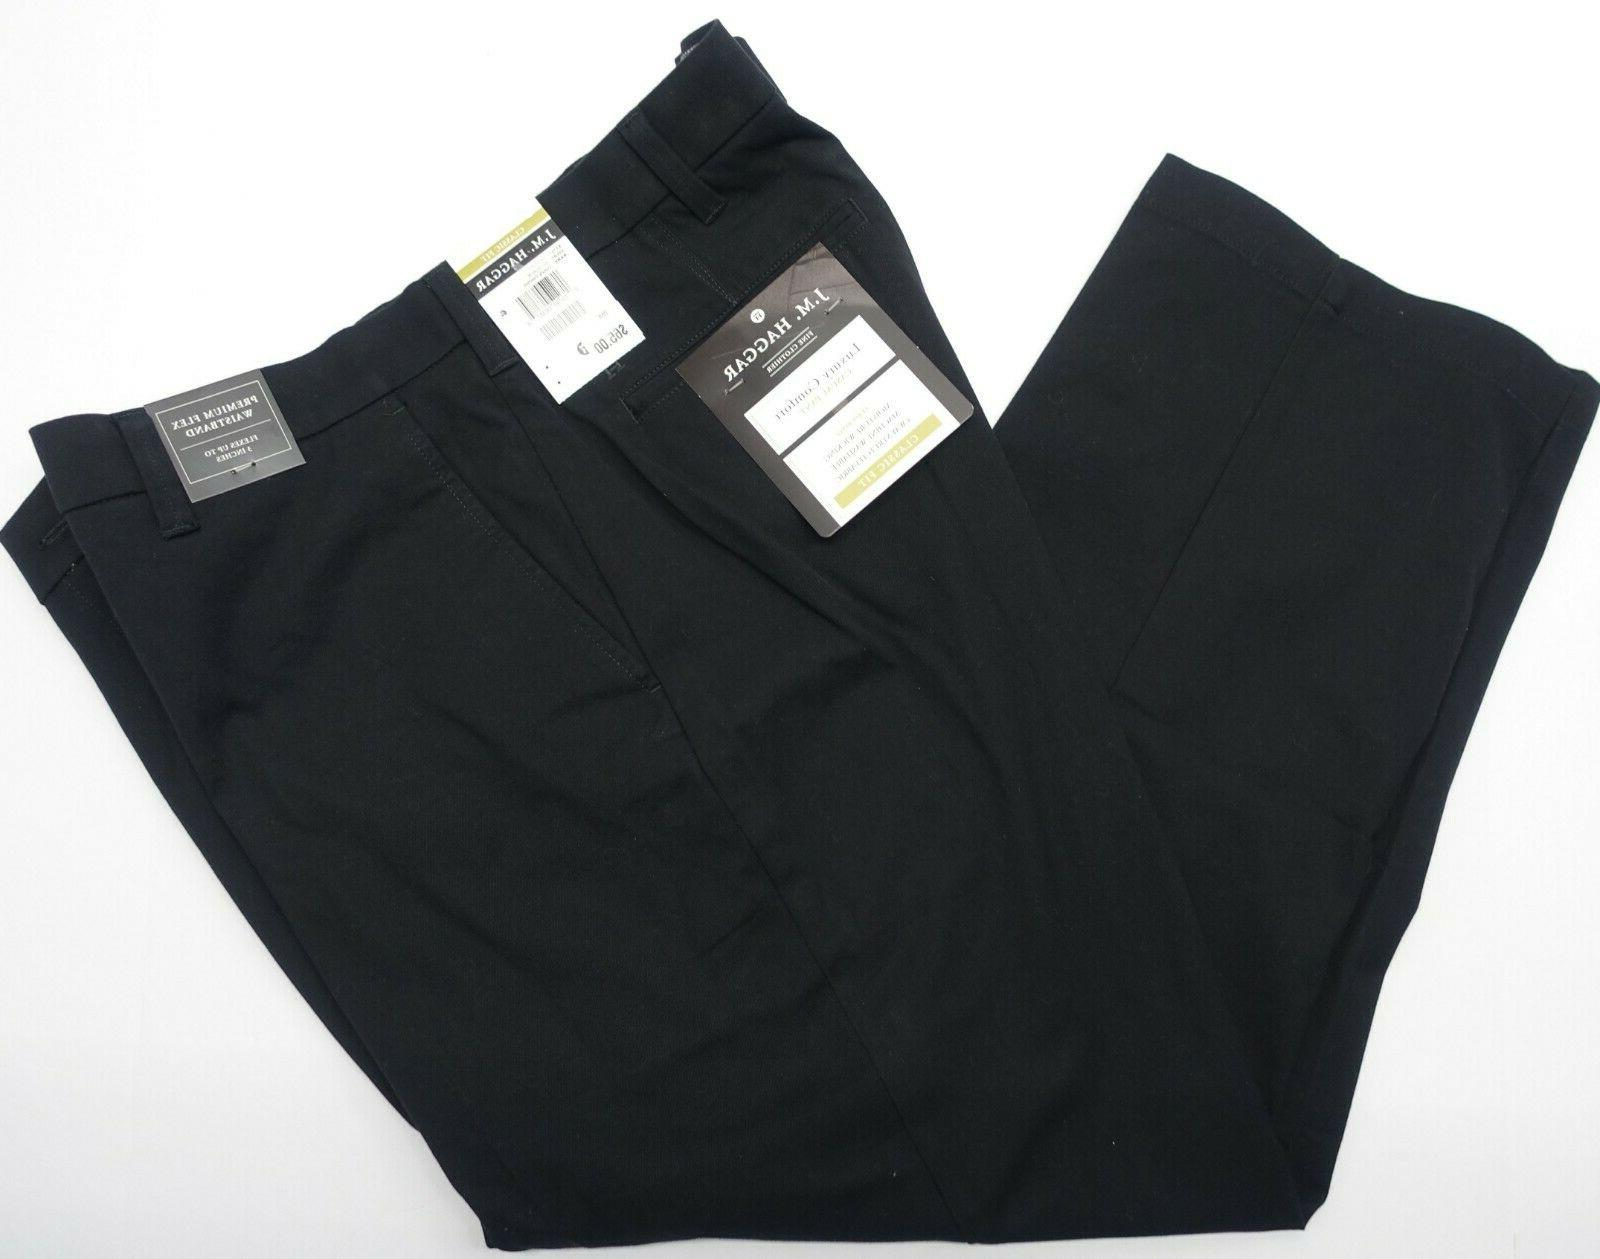 Men JM Haggar Comfort Pants Premium Flex Waist Classic Fit Way Stretch